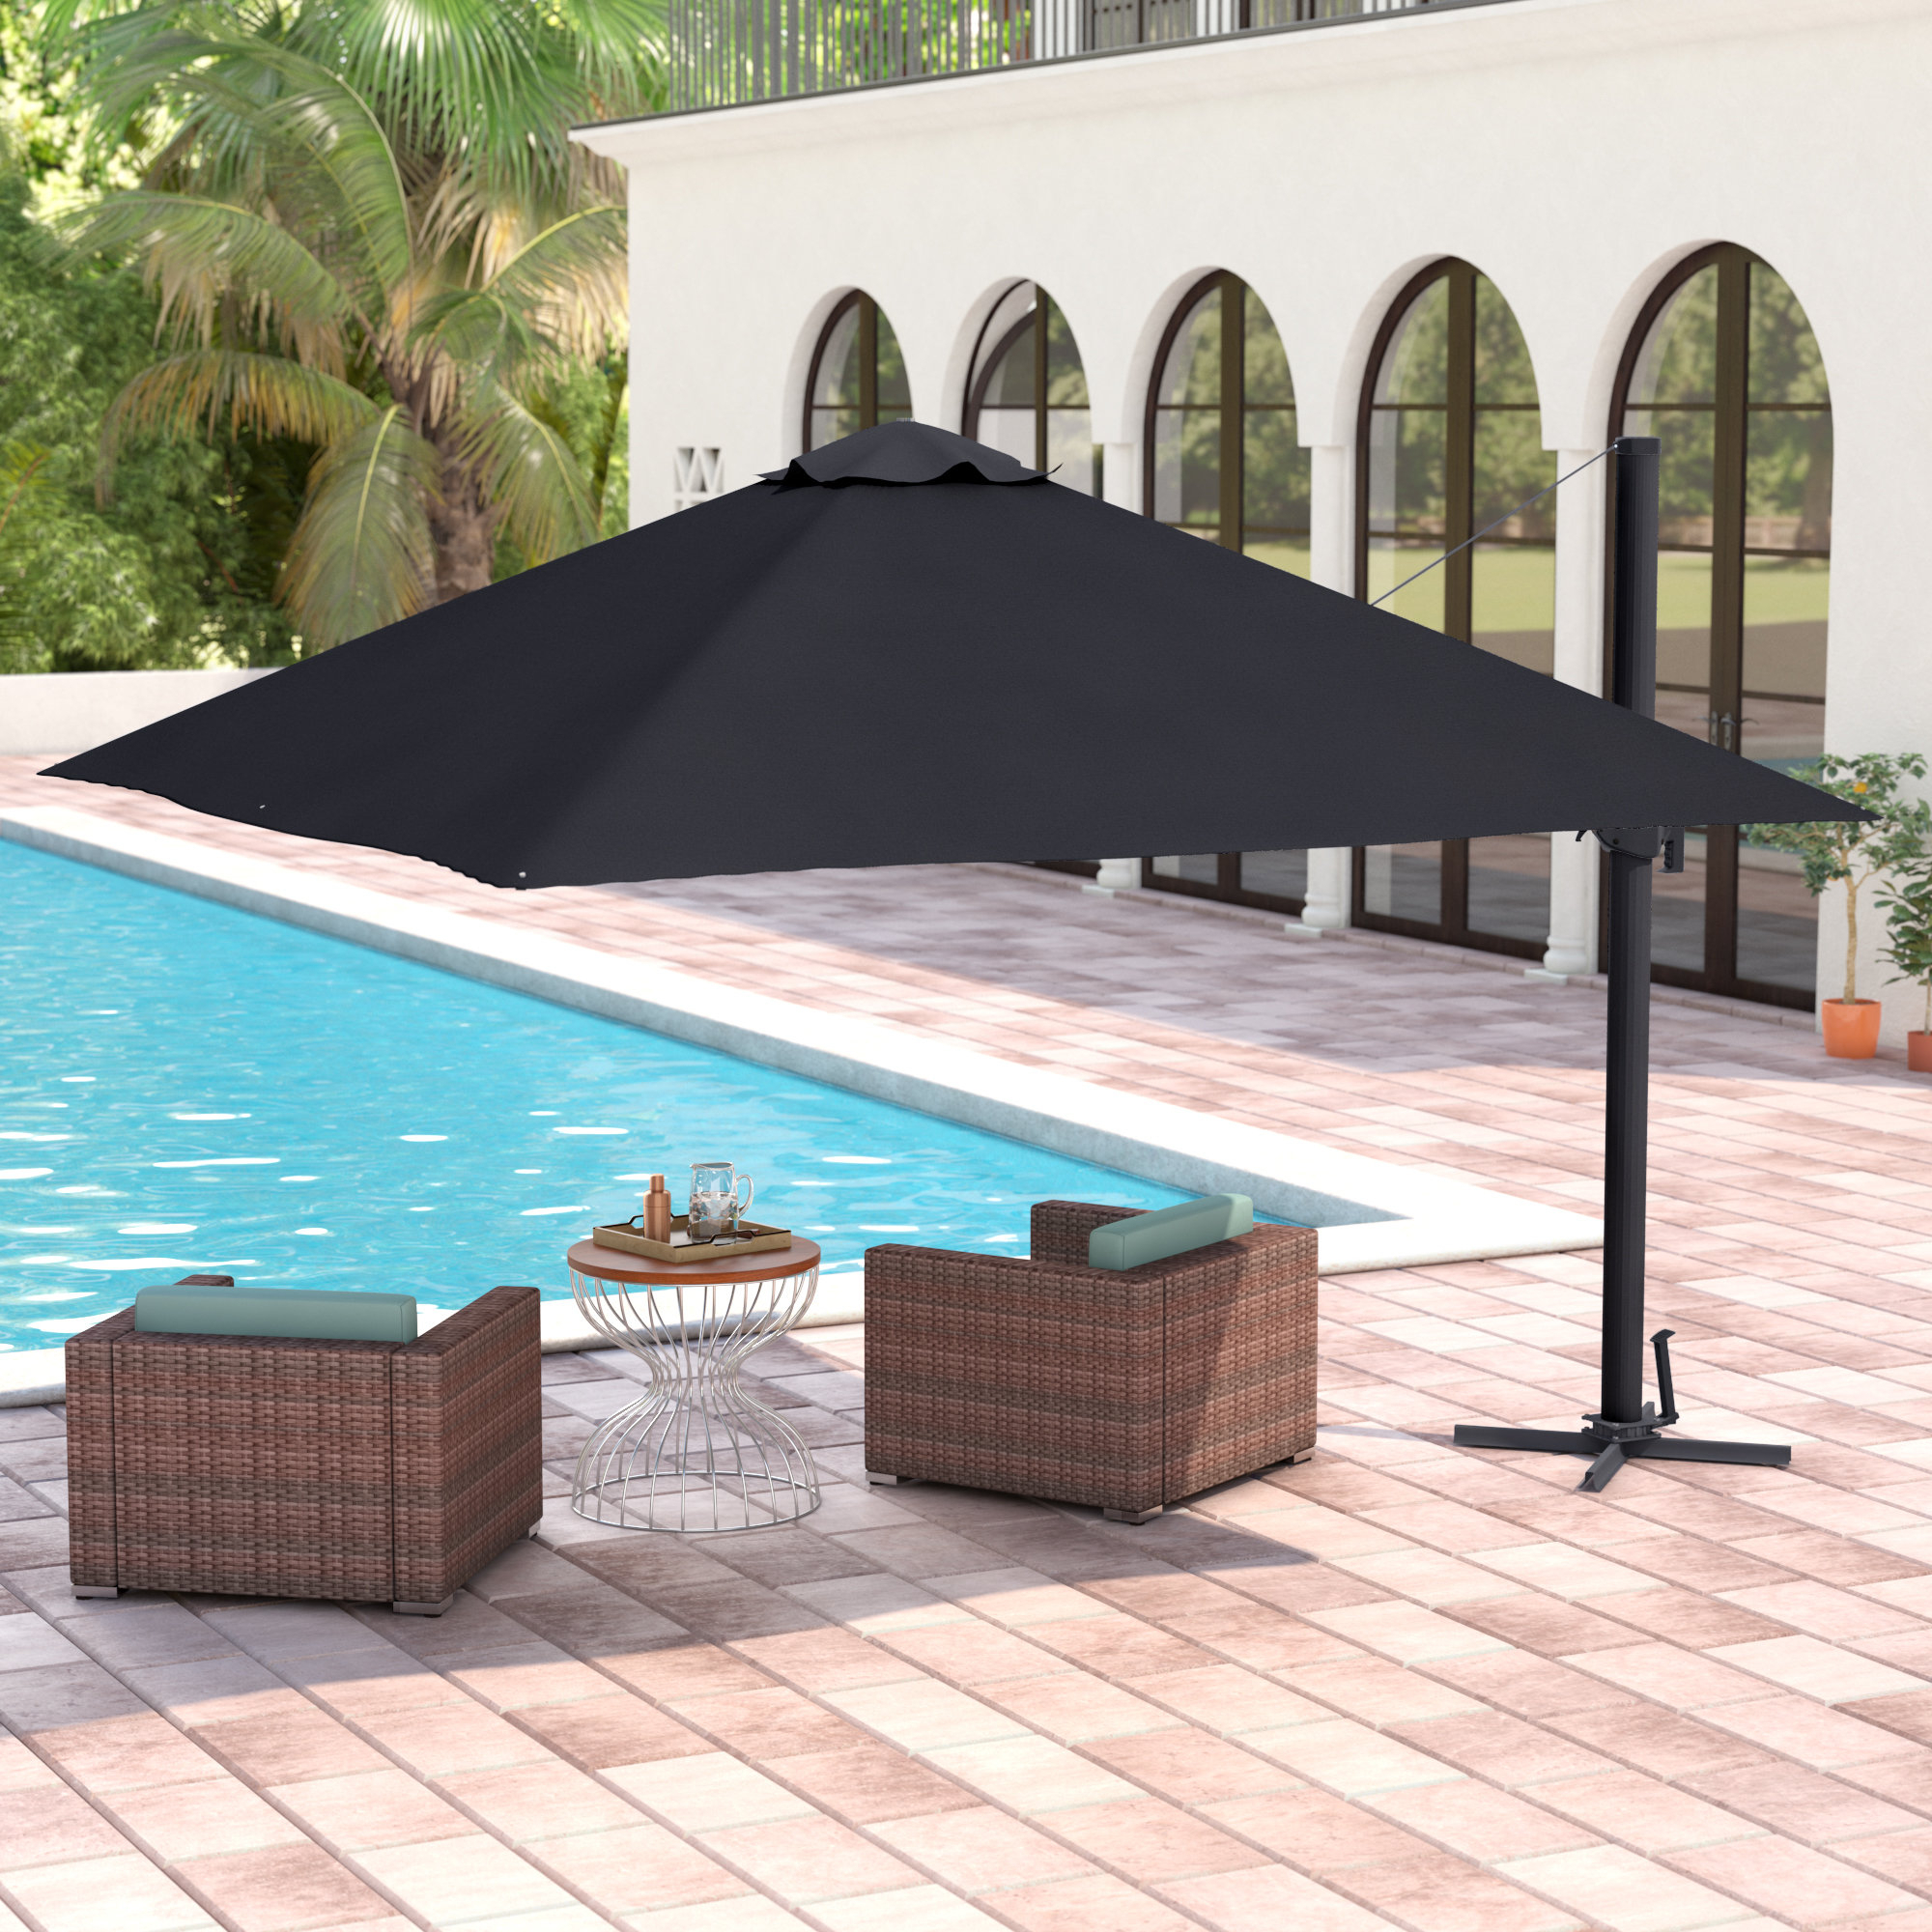 Grote Liberty Aluminum Square Cantilever Umbrella For Well Known Maidste Square Cantilever Umbrellas (View 16 of 20)